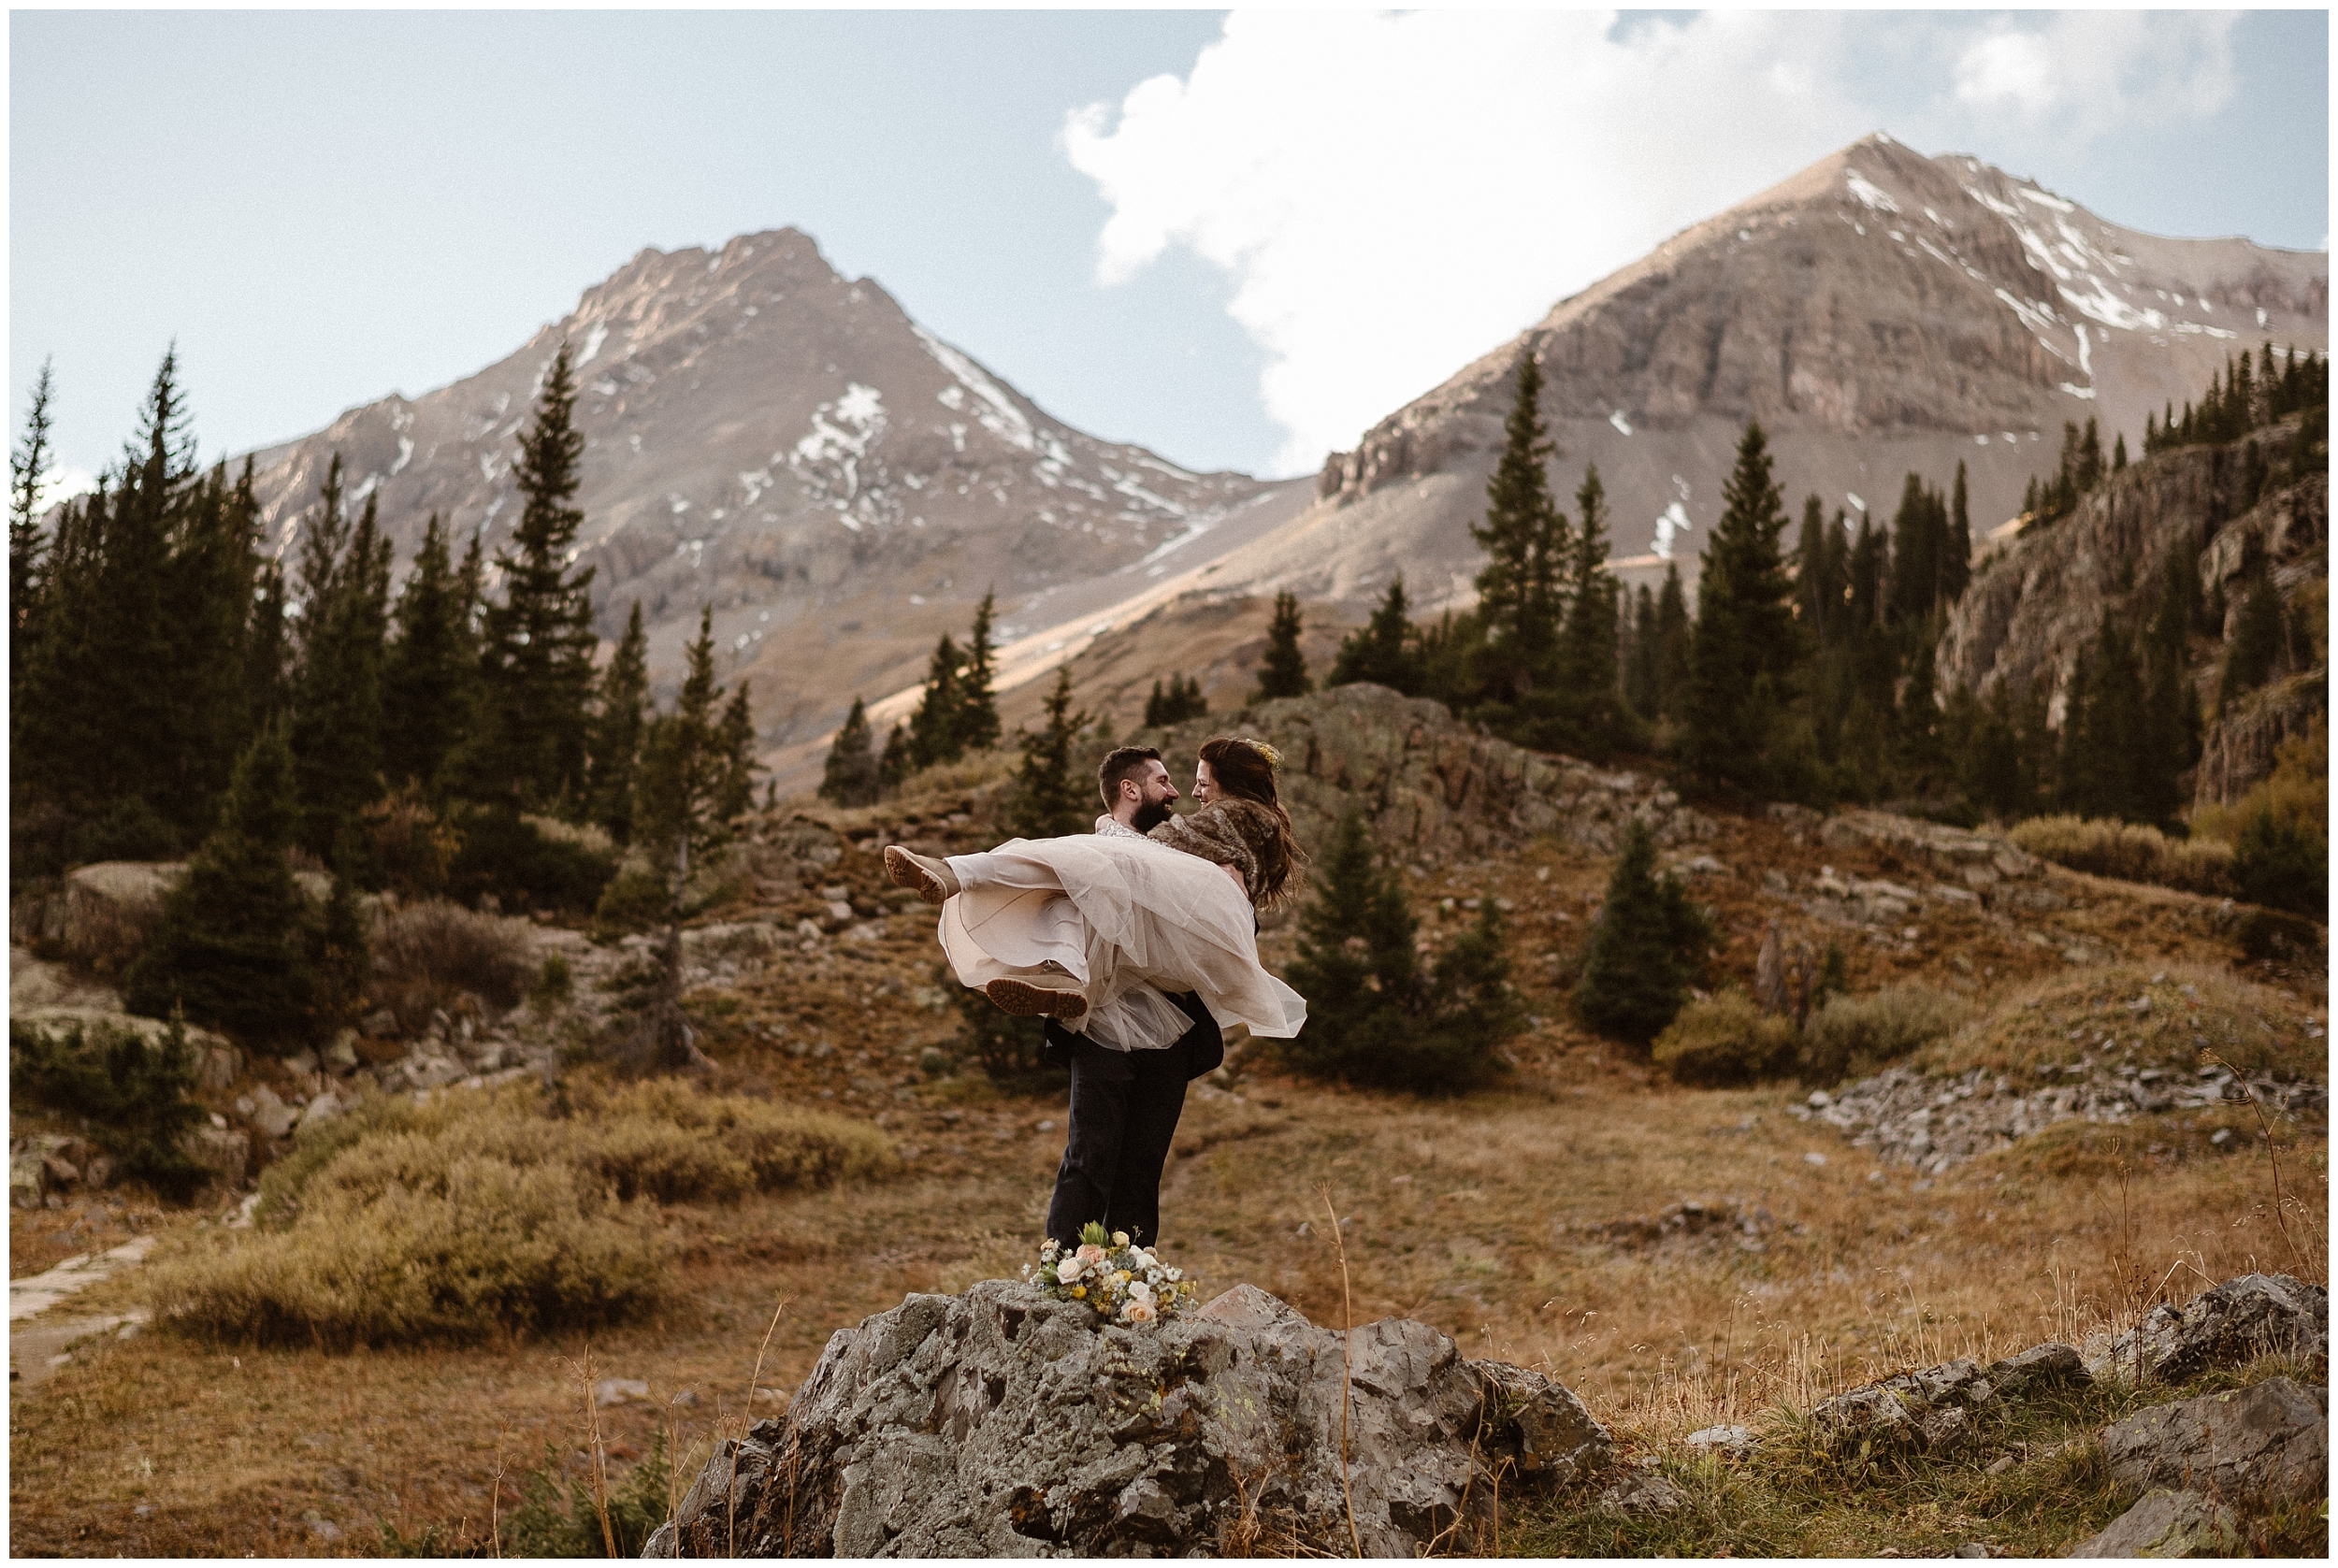 A groom sweeps his bride off her feet in the middle of a beautiful, mountain-lined forest. The dark green trees reach up toward the sky and the mountain peaks in the back are covered in snow — these unique eloping ideas (like having your destination elopement wherever you want) are the key benefits of eloping.